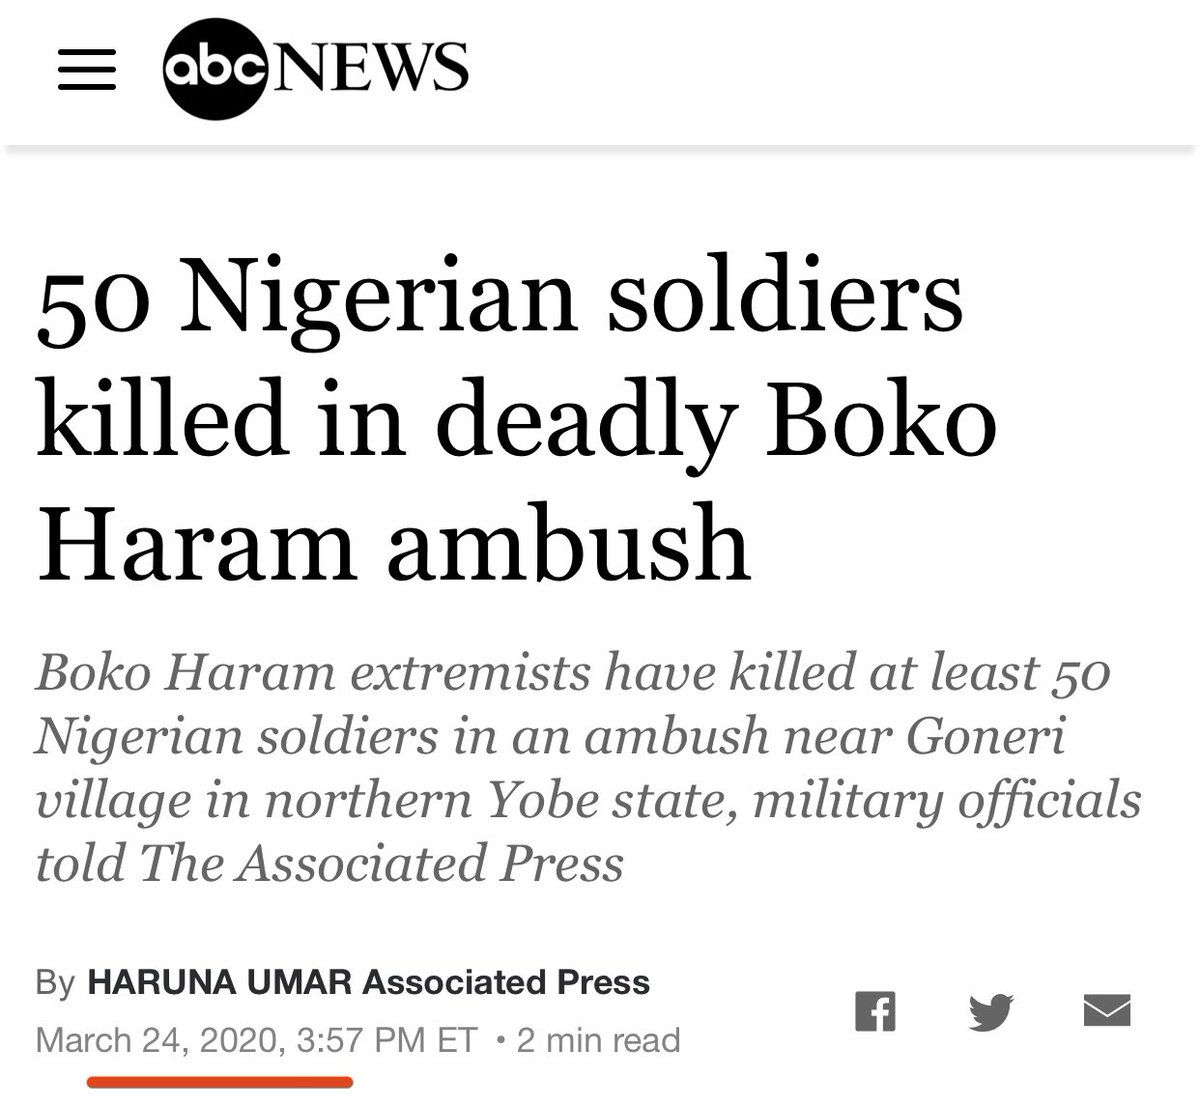 Buhari planned to Holiday but we made his failed Presidency trend #1 nationally and #4 globally that now he wants to address the nation @ 7PM 😂  Why didn't General Buhari address the nation when Boko Haram ambushed and killed 50 soldiers after he released 1400 of them!?👇🏼